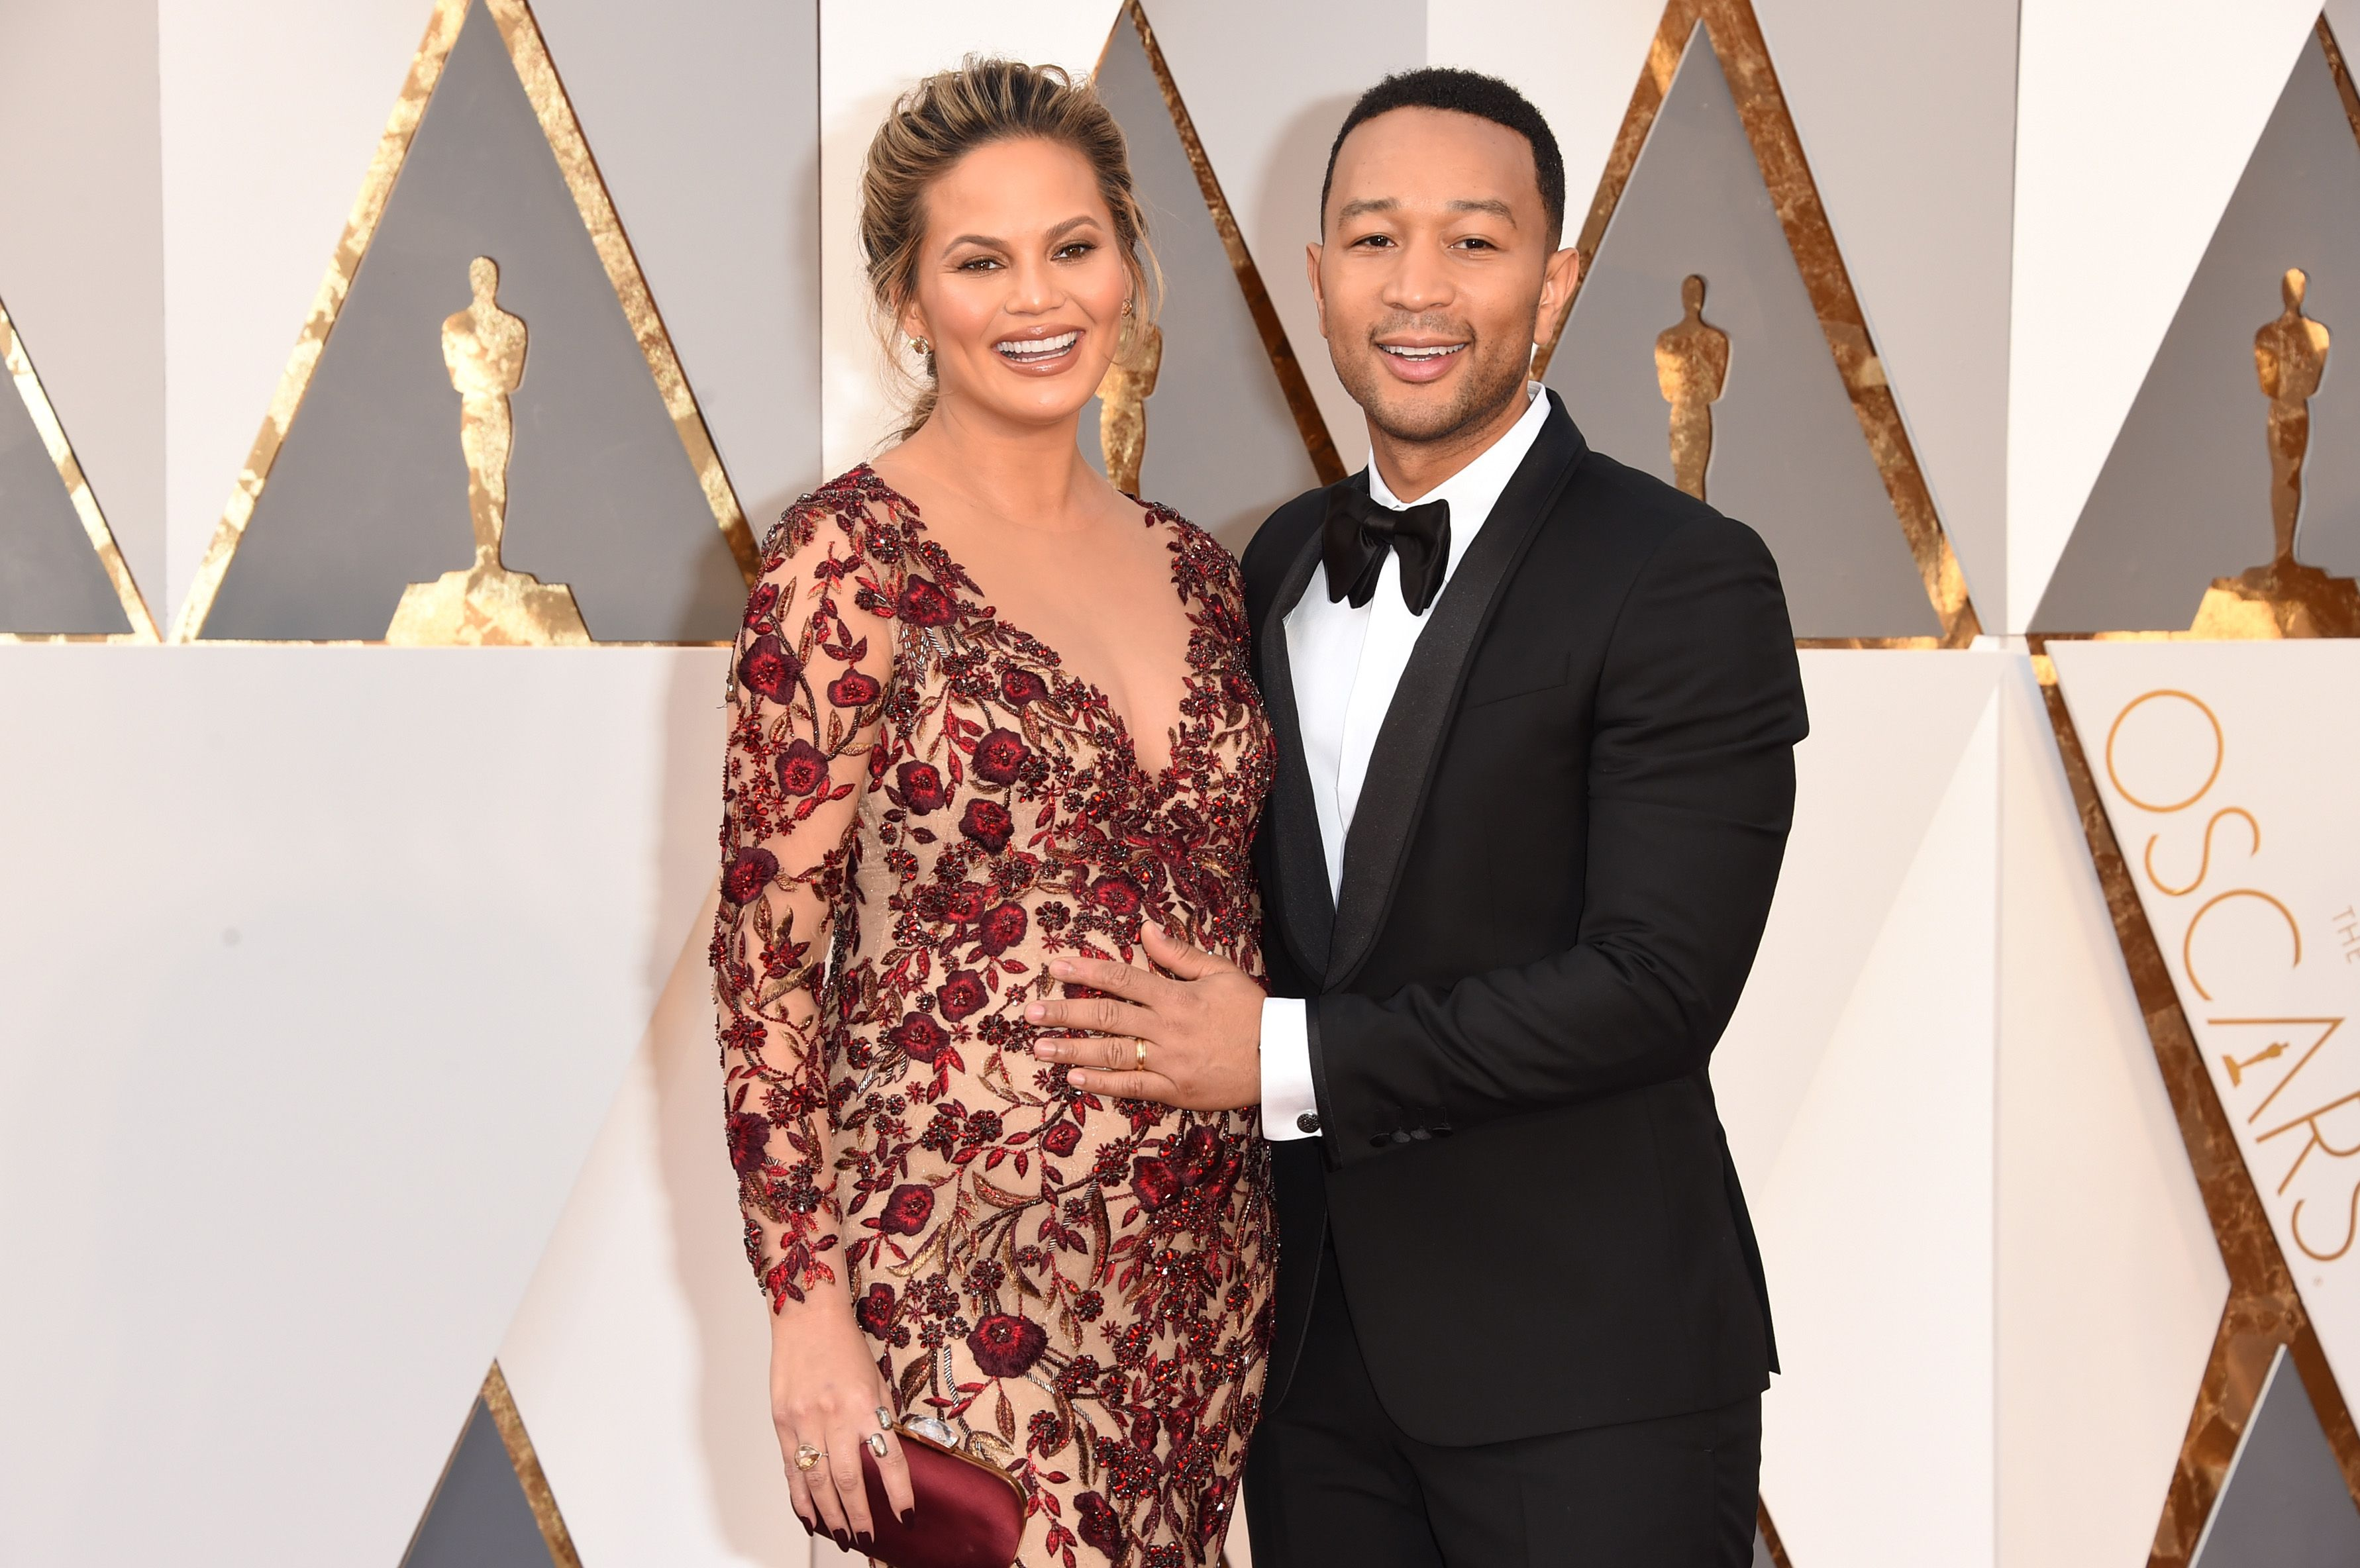 Chrissy Teigen and John Legend attend the 88th Annual Academy Awards at Hollywood & Highland Center on February 28, 2016 in California.   Photo: Getty Images.